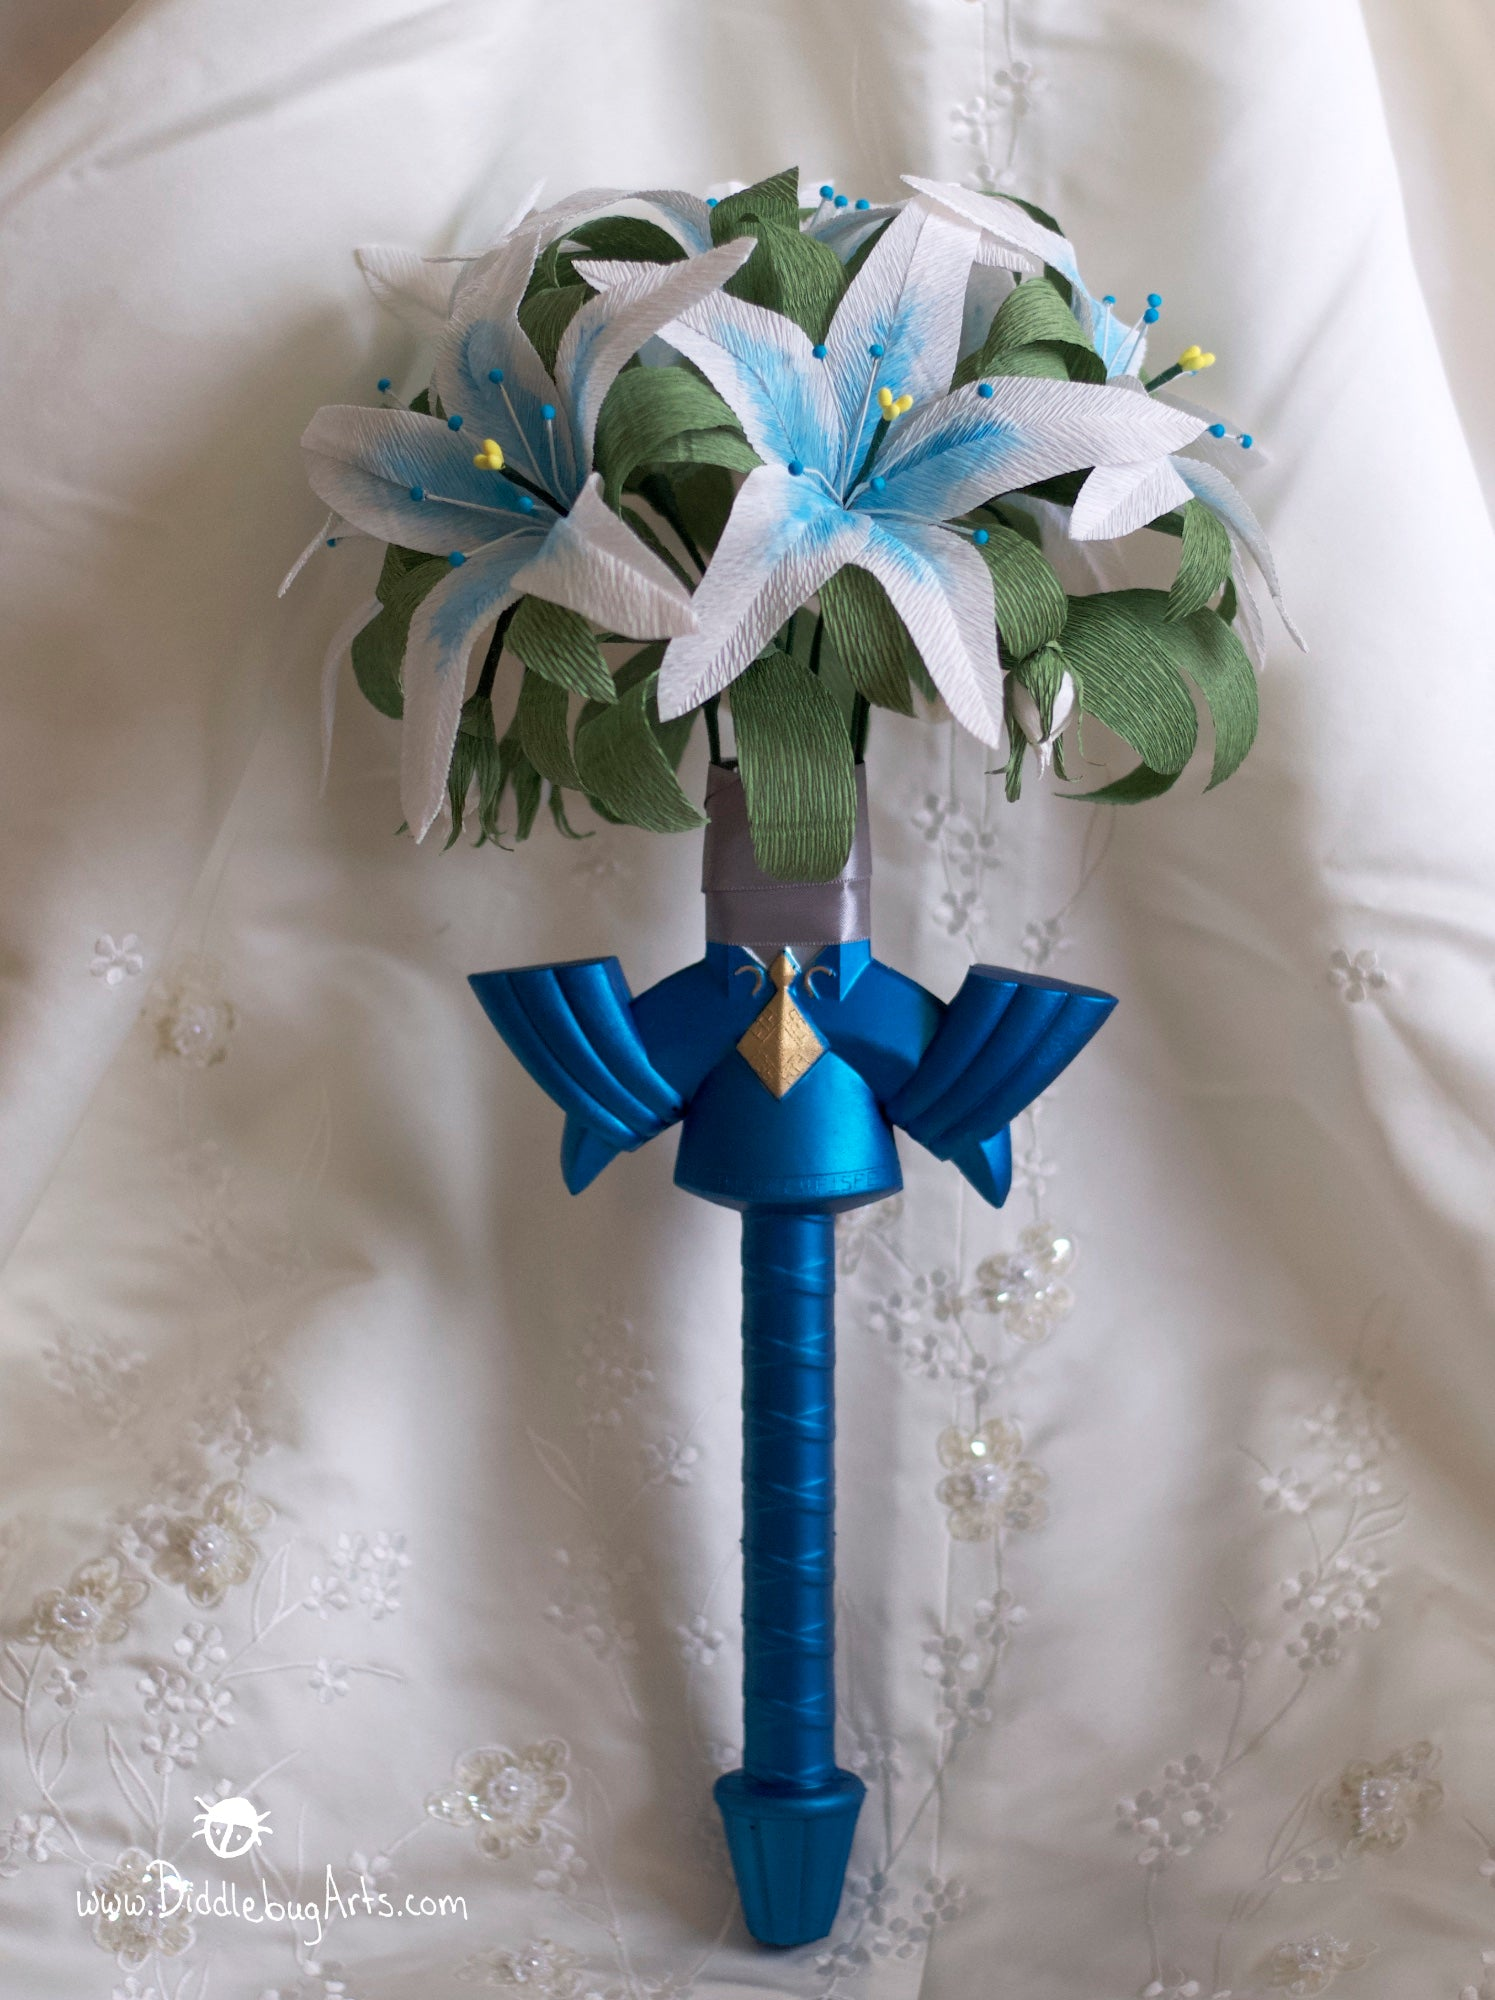 master sword hilt from Legend of Zelda video game with paper flowers wedding bouquet